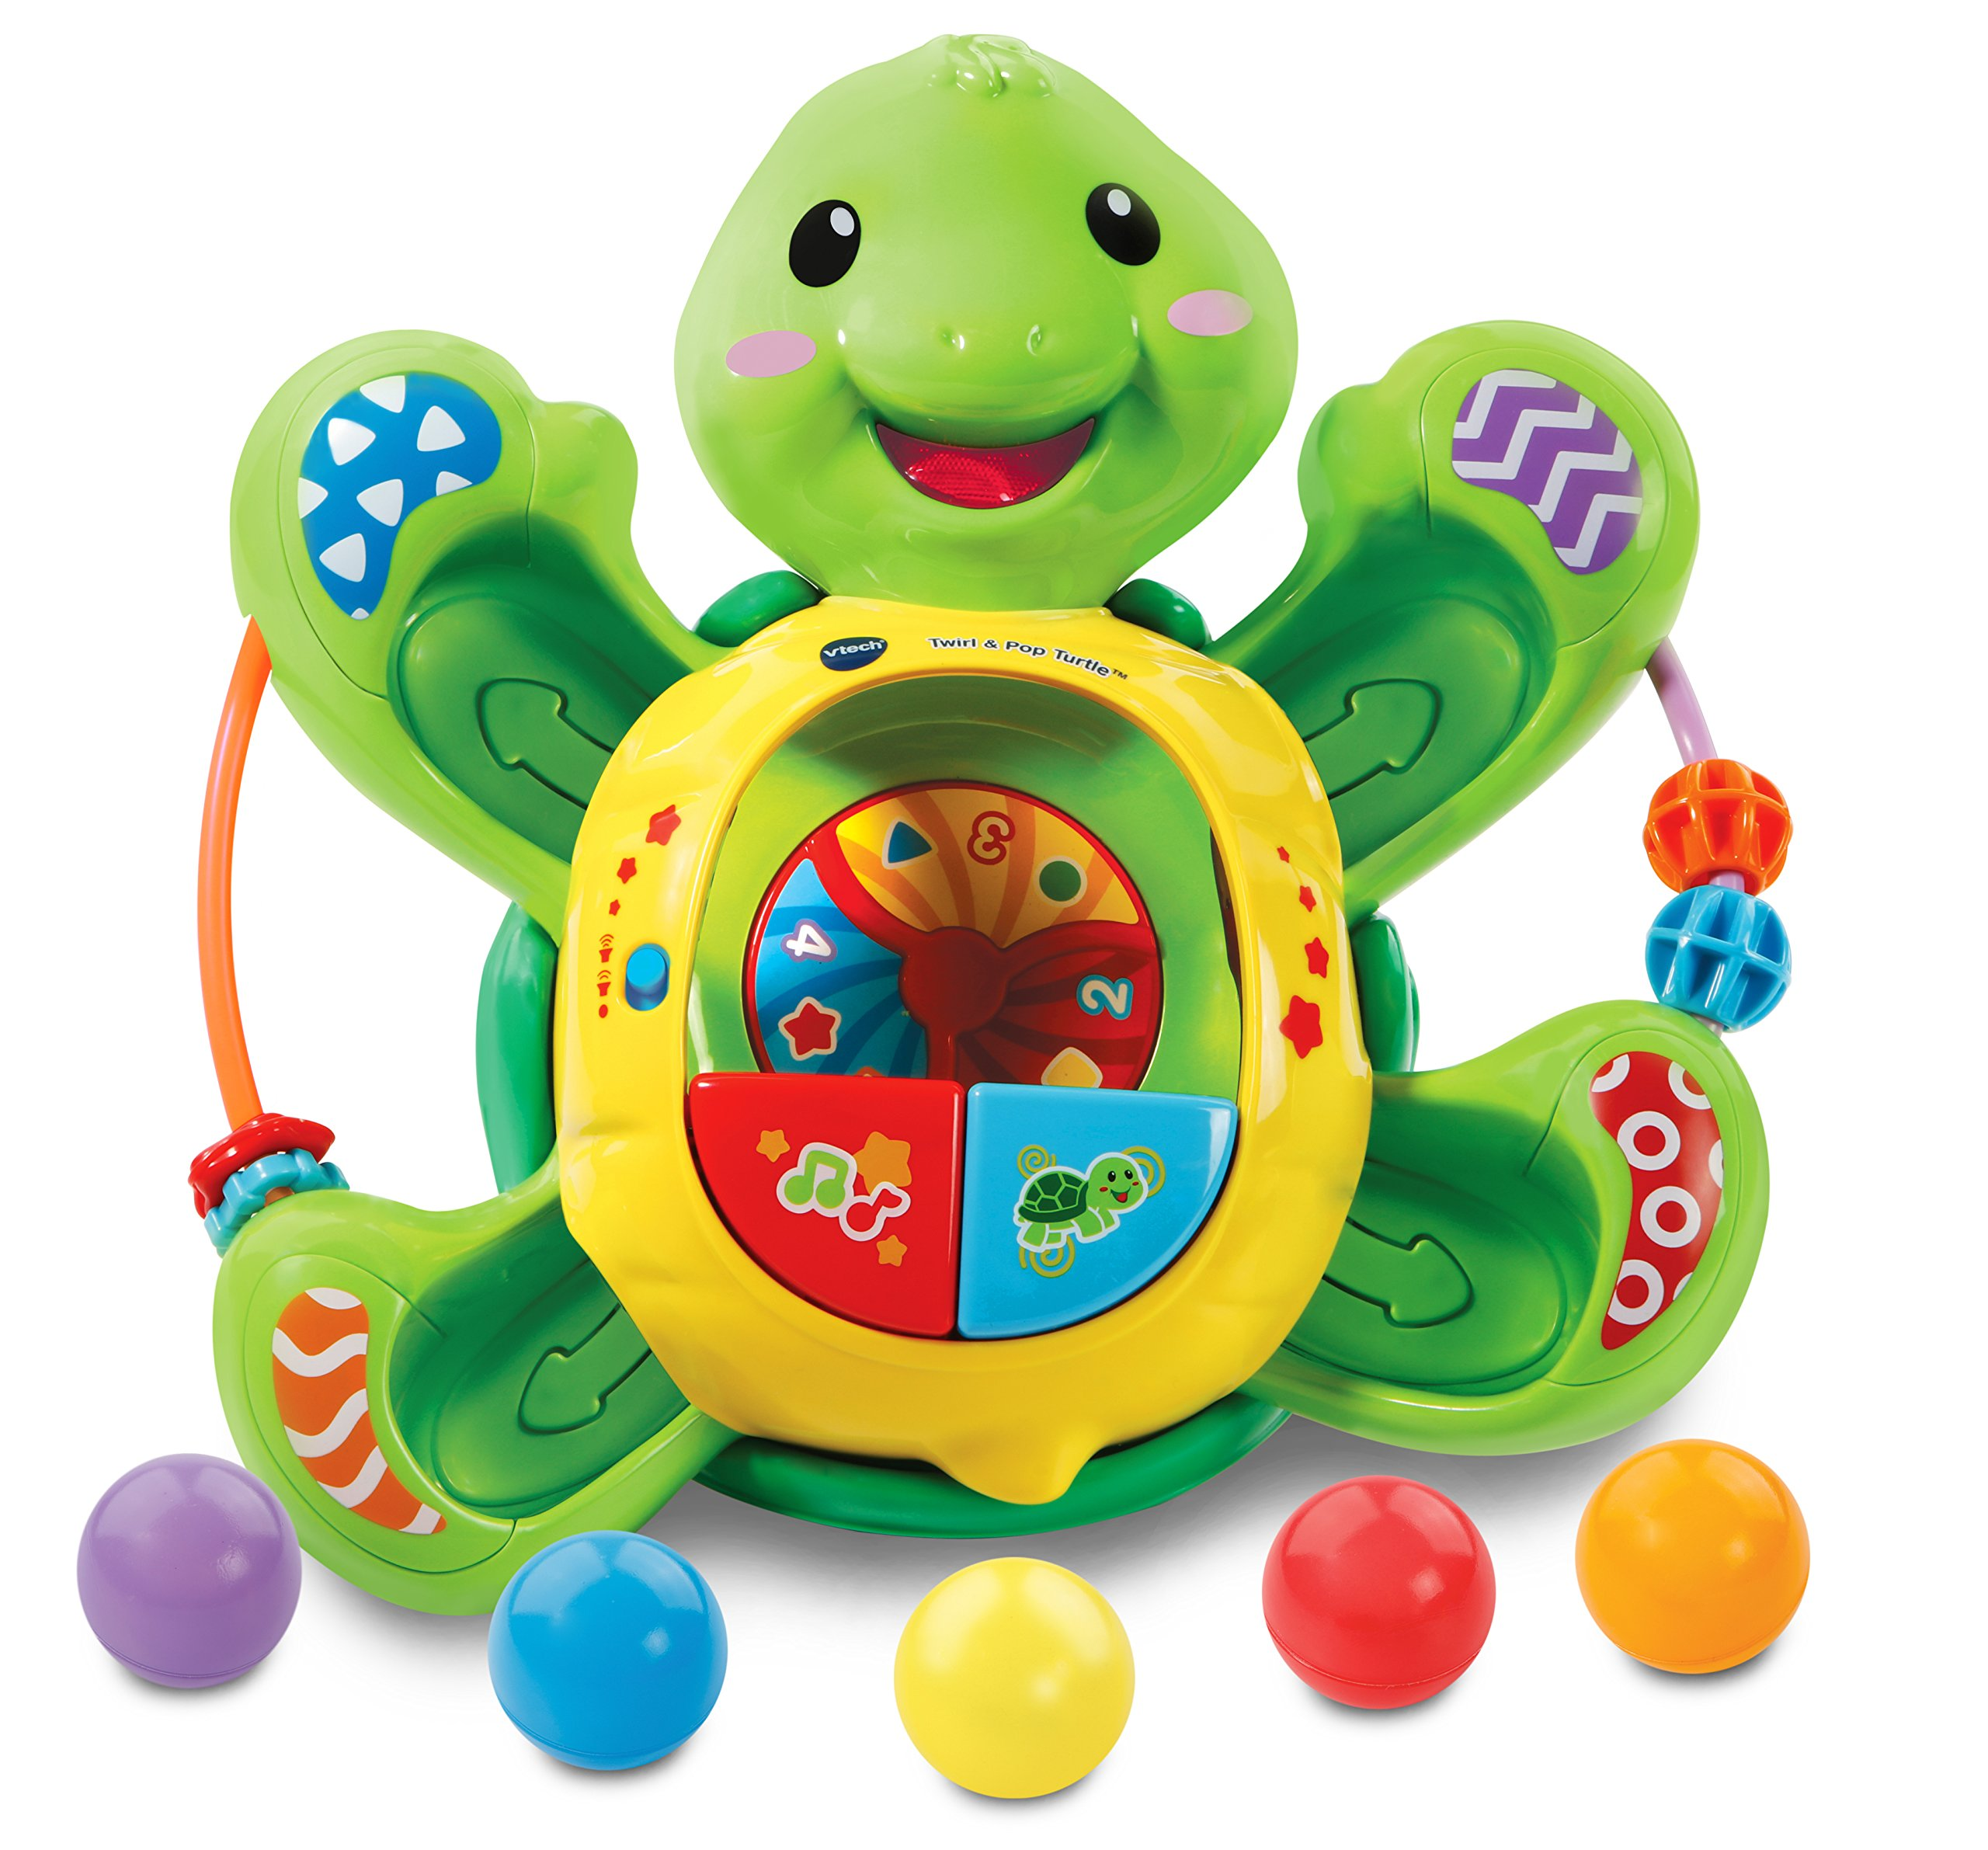 Most Popular Educative Toys For Baby Toddler Boy Girl Pop a Balls